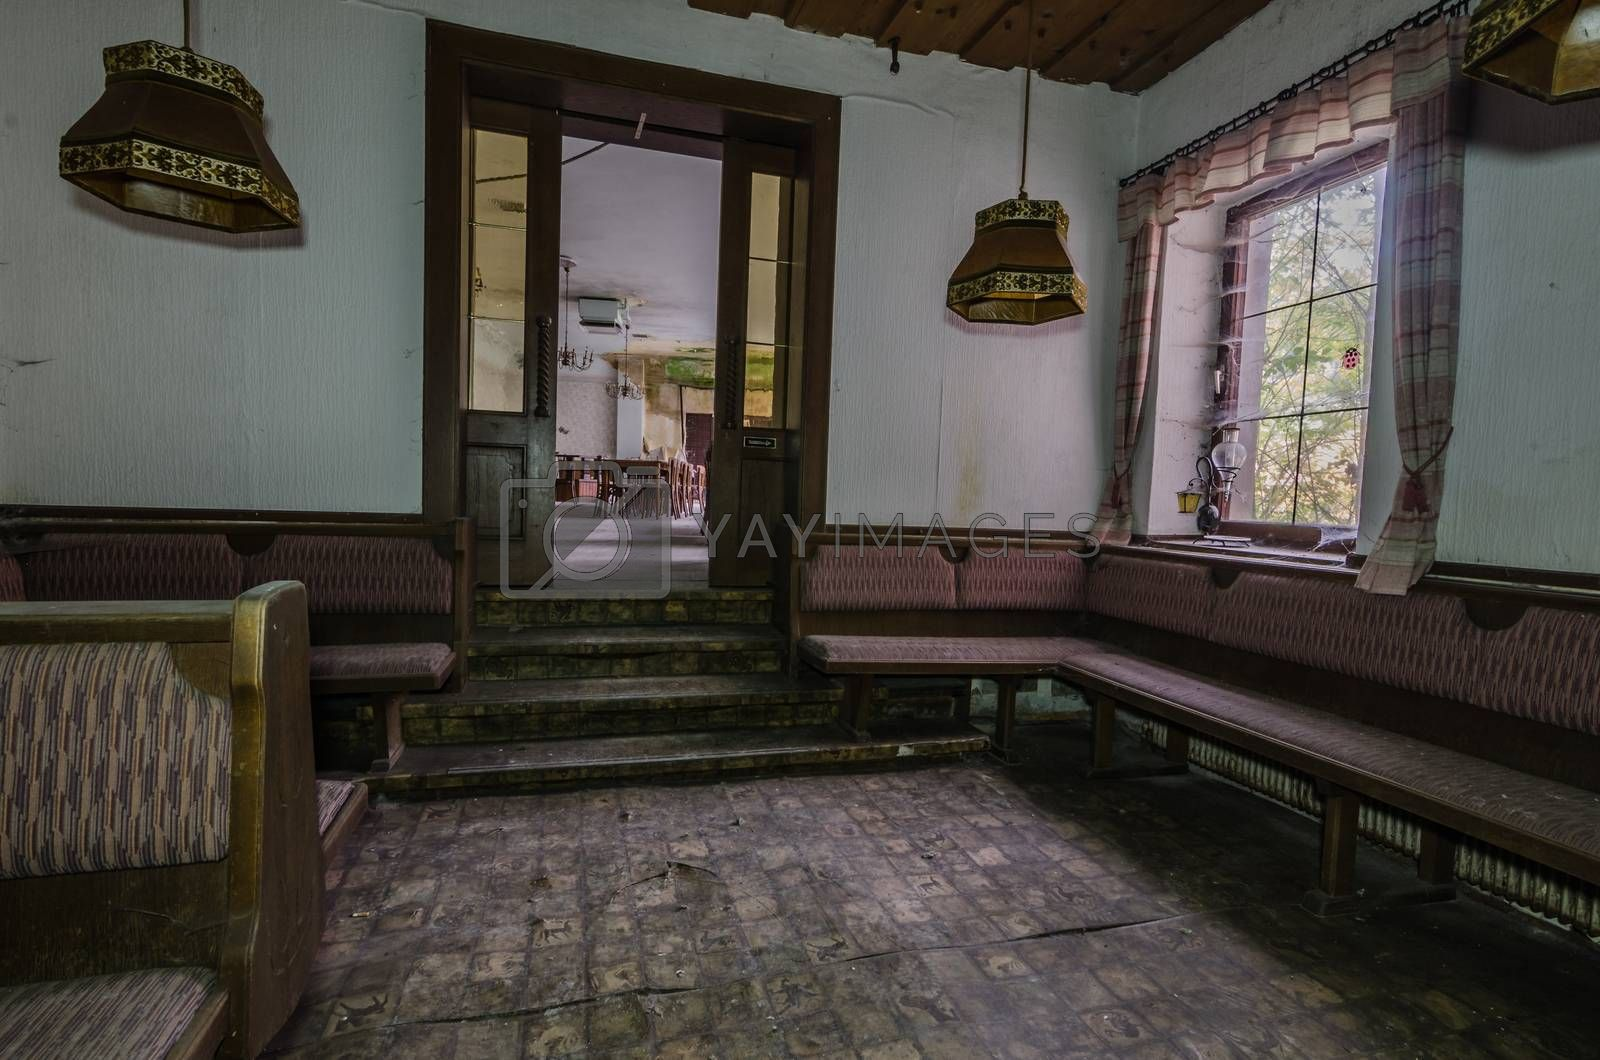 Anteroom to hall in old guest house by thomaseder